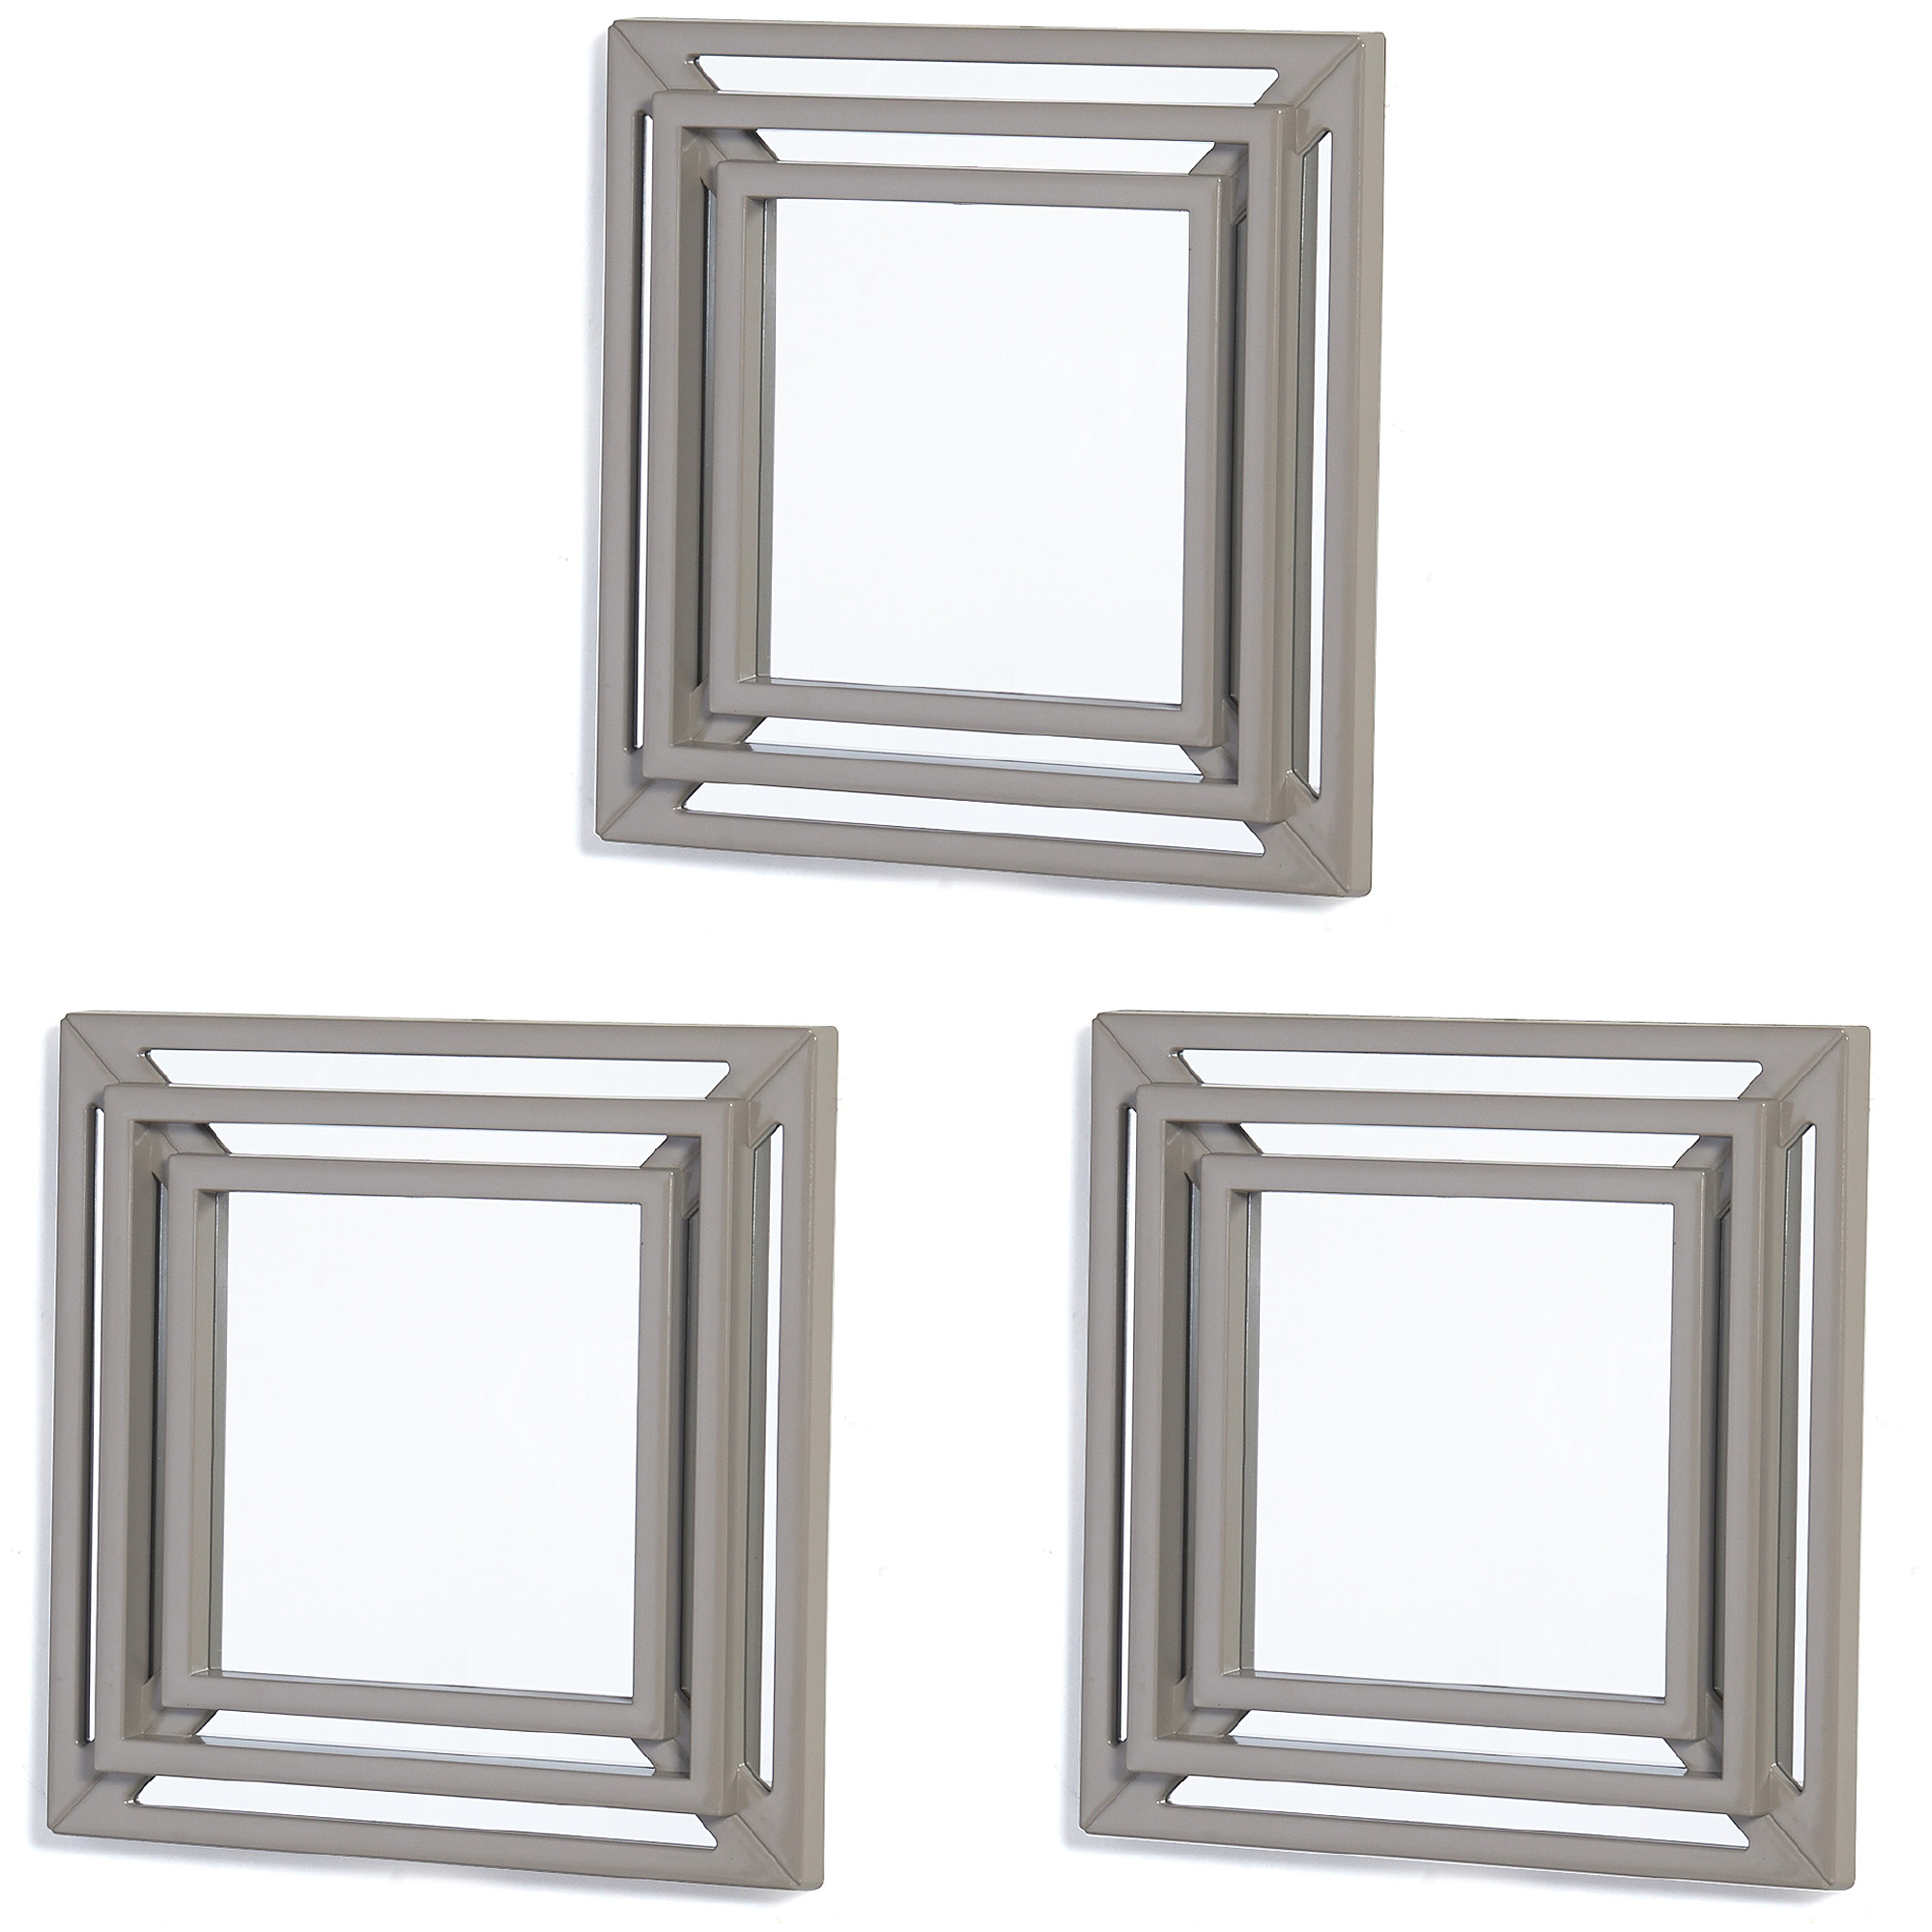 Elements Silver Triple Square Wall Mirrors, Set of 3, 12